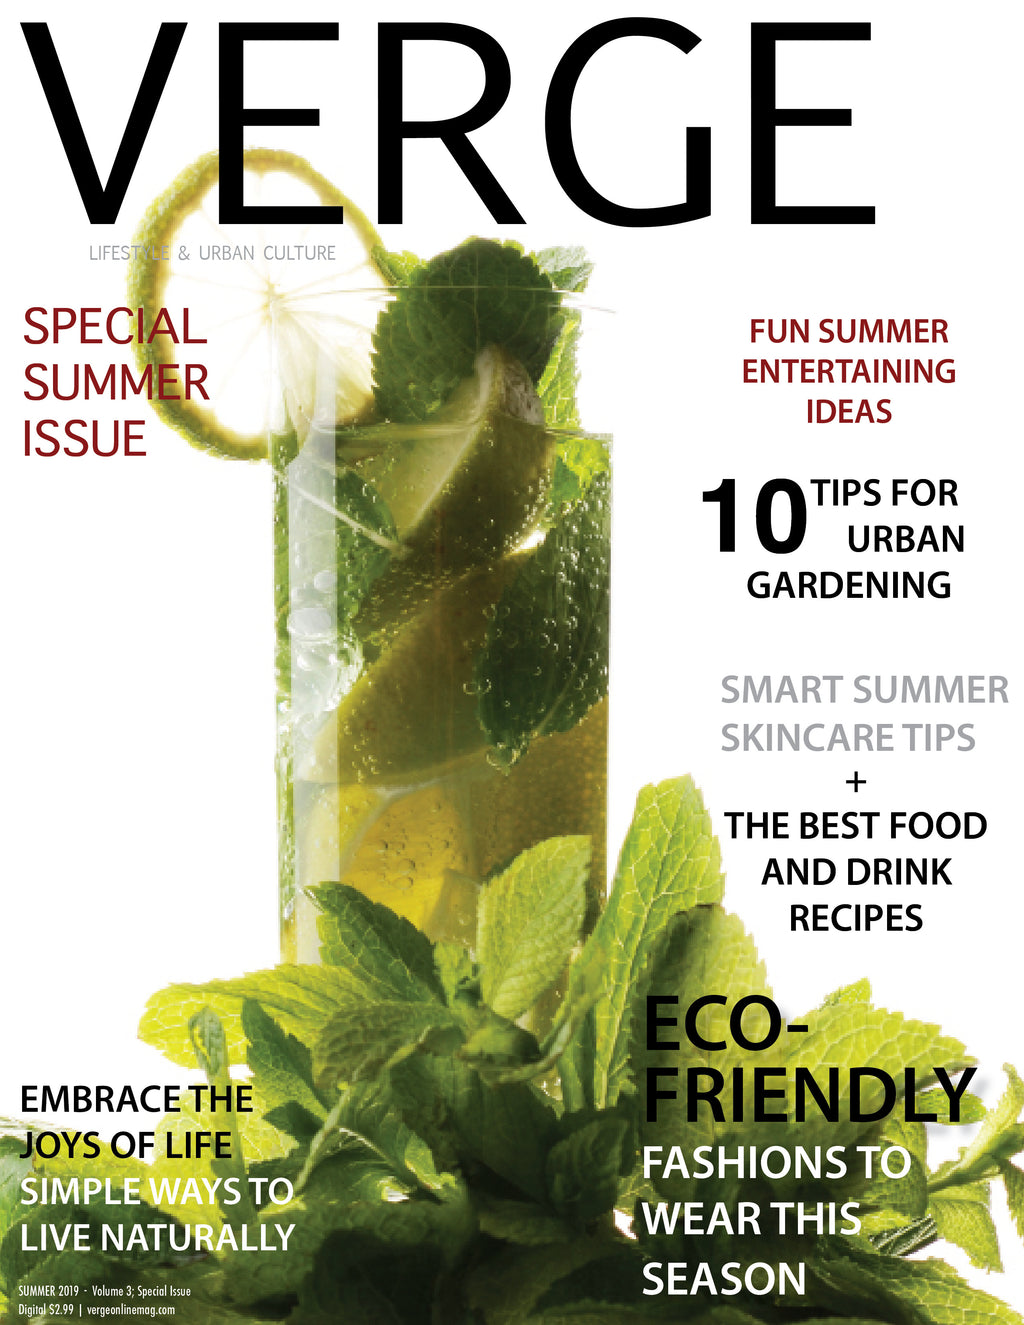 VERGE Lifestyle & Urban Culture Magazine - Magazine - VERGE 2019 - Special Summer Issue (Digital)